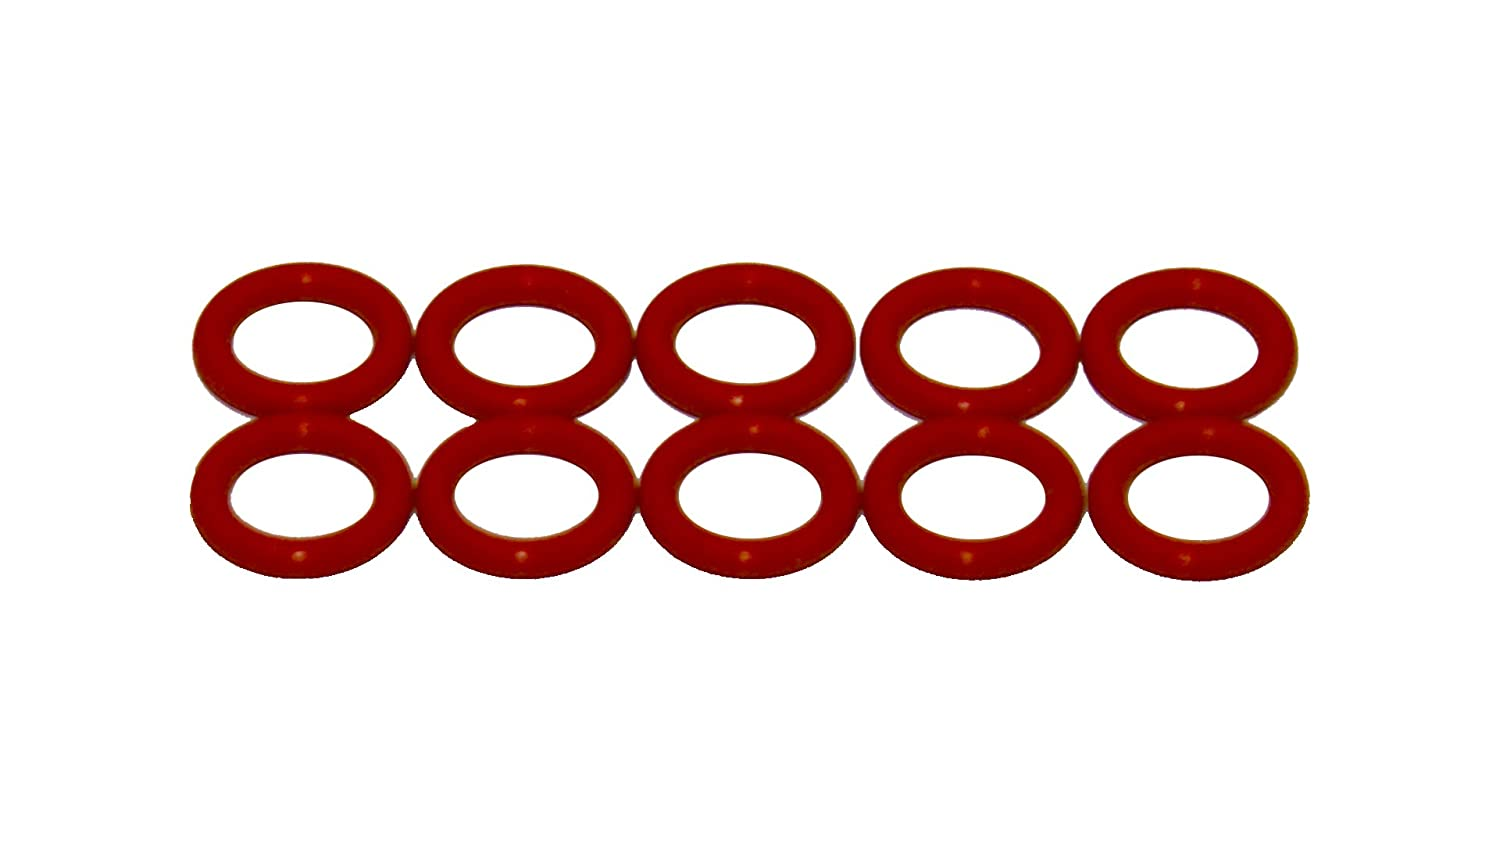 70 Durometer Hardness Pack of 10 Sterling Seal ORSIL012x10 Number-012 Standard Silicone O-Ring 3//8 ID 1//2 OD 1//2 OD Sur-Seal Inc. 3//8 ID Pack of 10 Excellent Resistance to Oxygen Vinyl Methyl Silicone Ozone and Sunlight